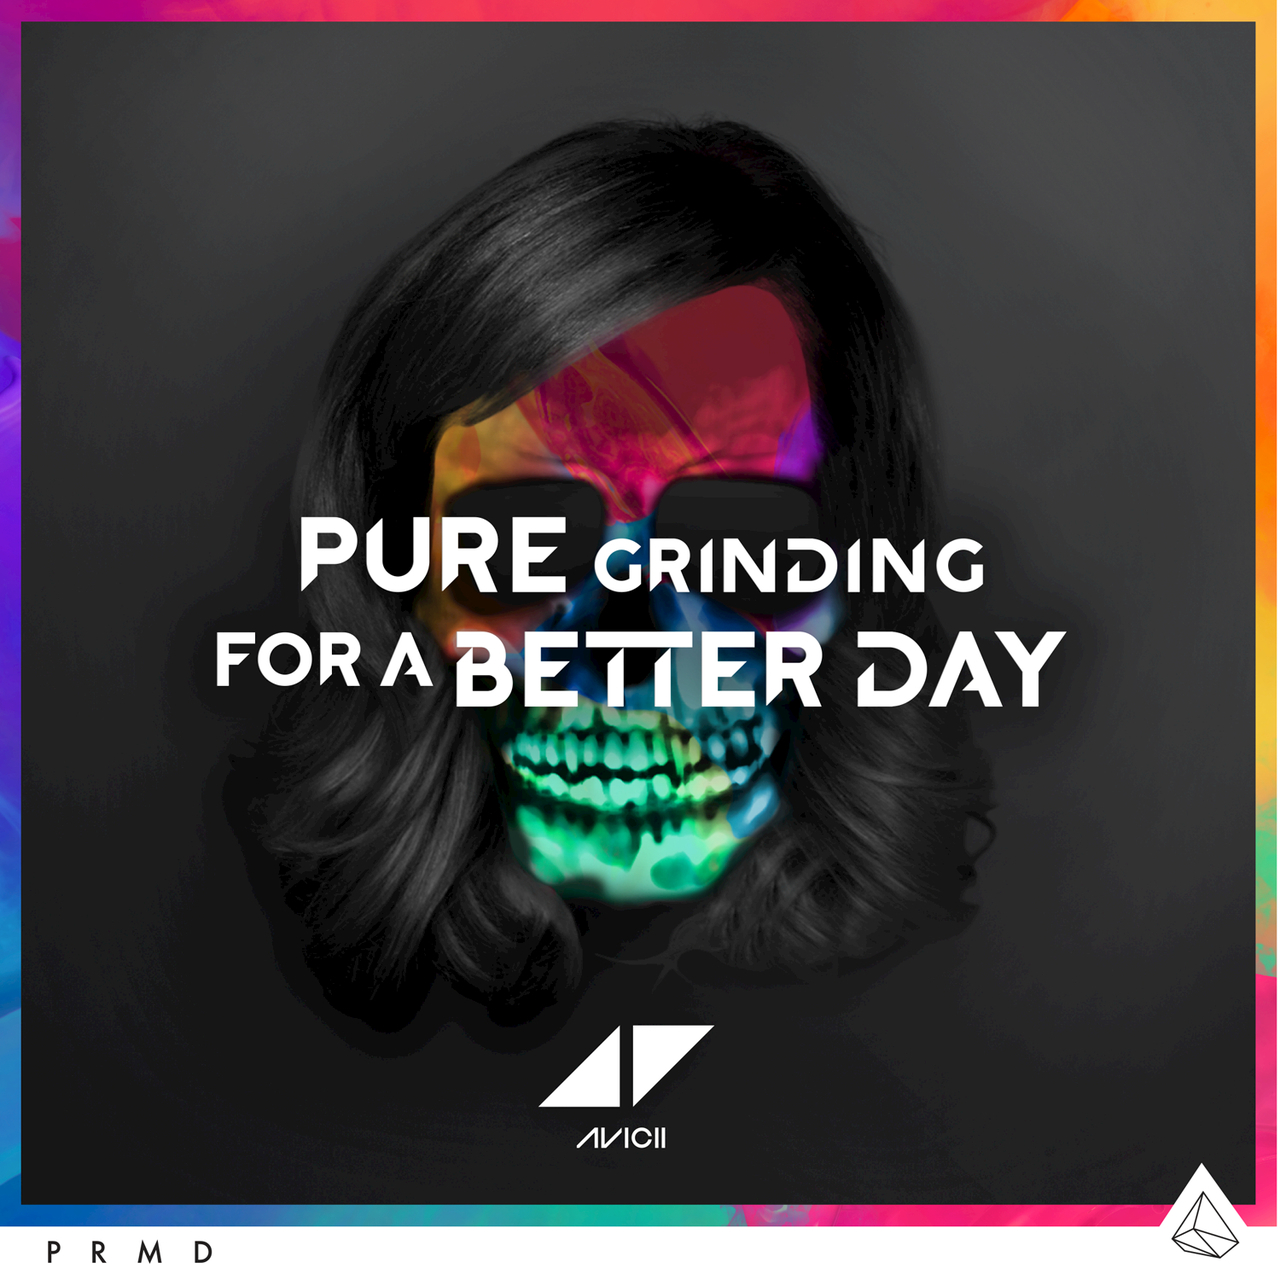 Avicii pure grinding   for a better day 2015 1280x1280